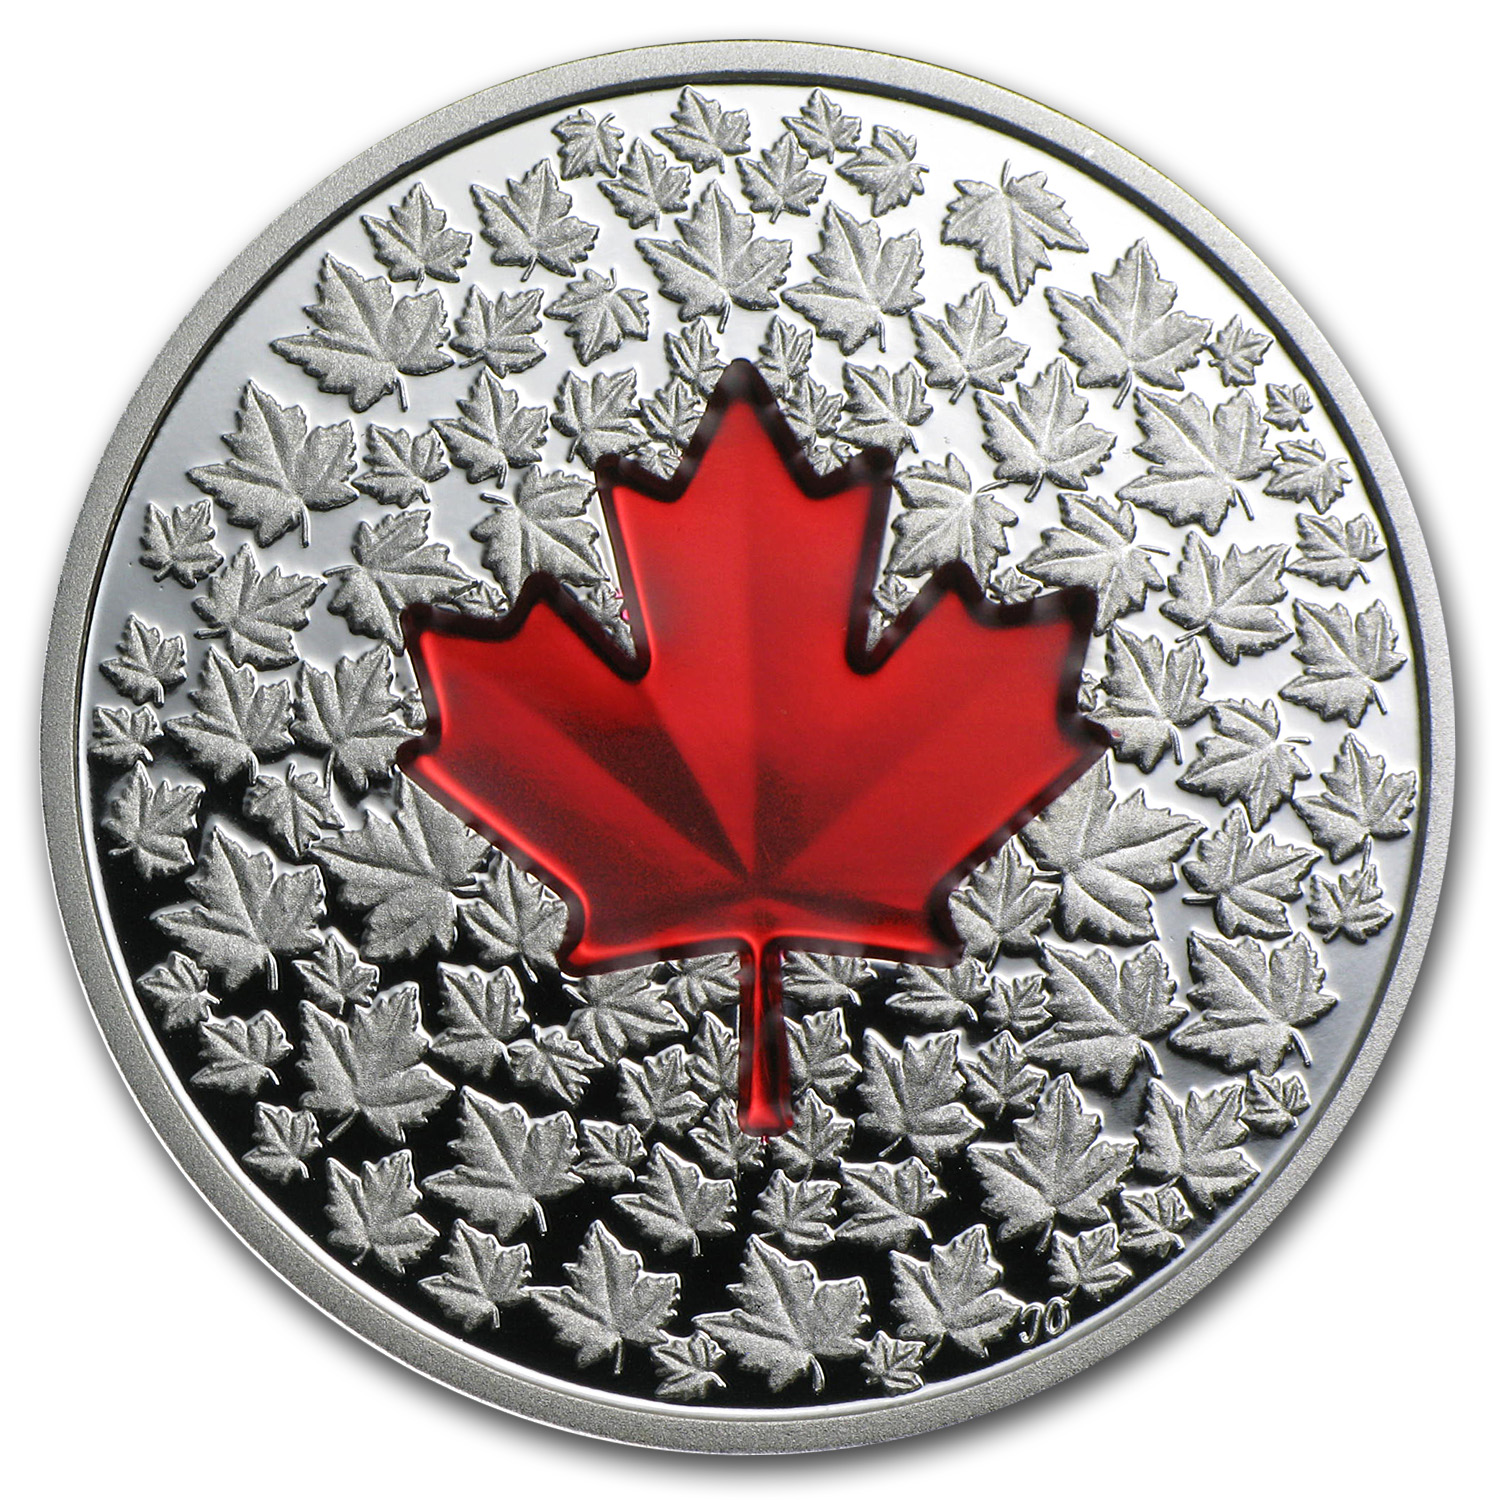 2013 Canada 1 oz Silver $20 Maple Leaf Impression (Red Enamel)